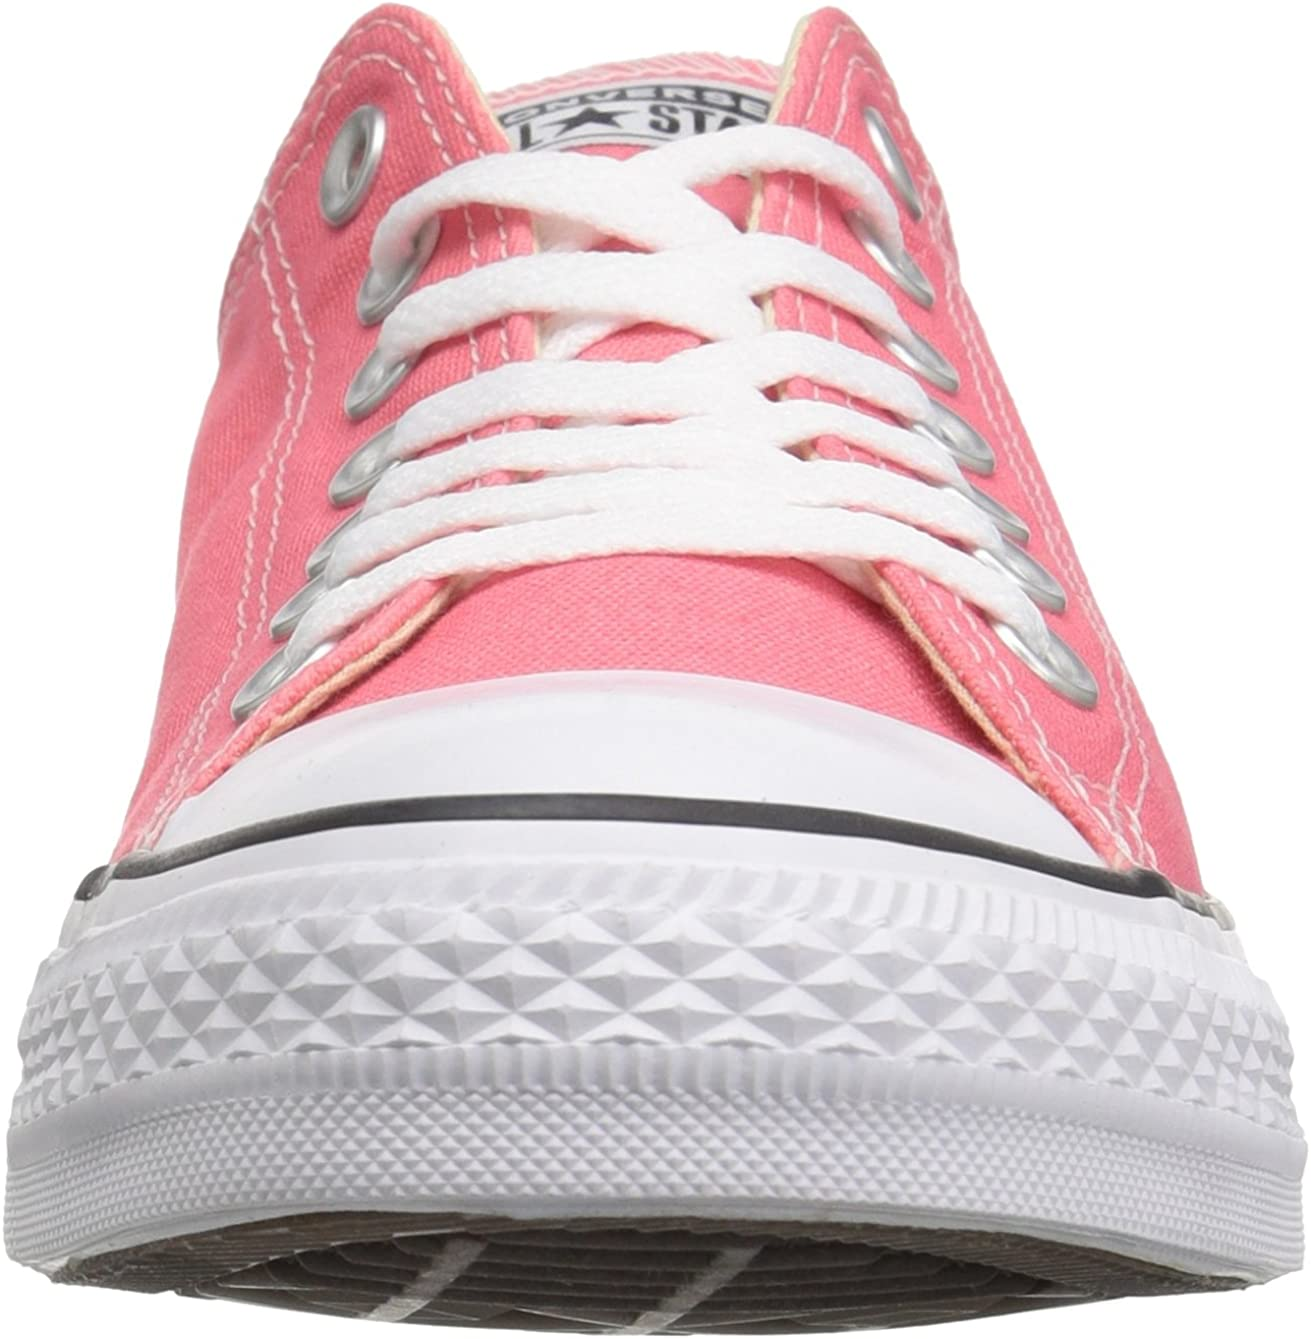 Converse Chuck Taylor All Star Core, Baskets Mixte Adulte Punch Coral